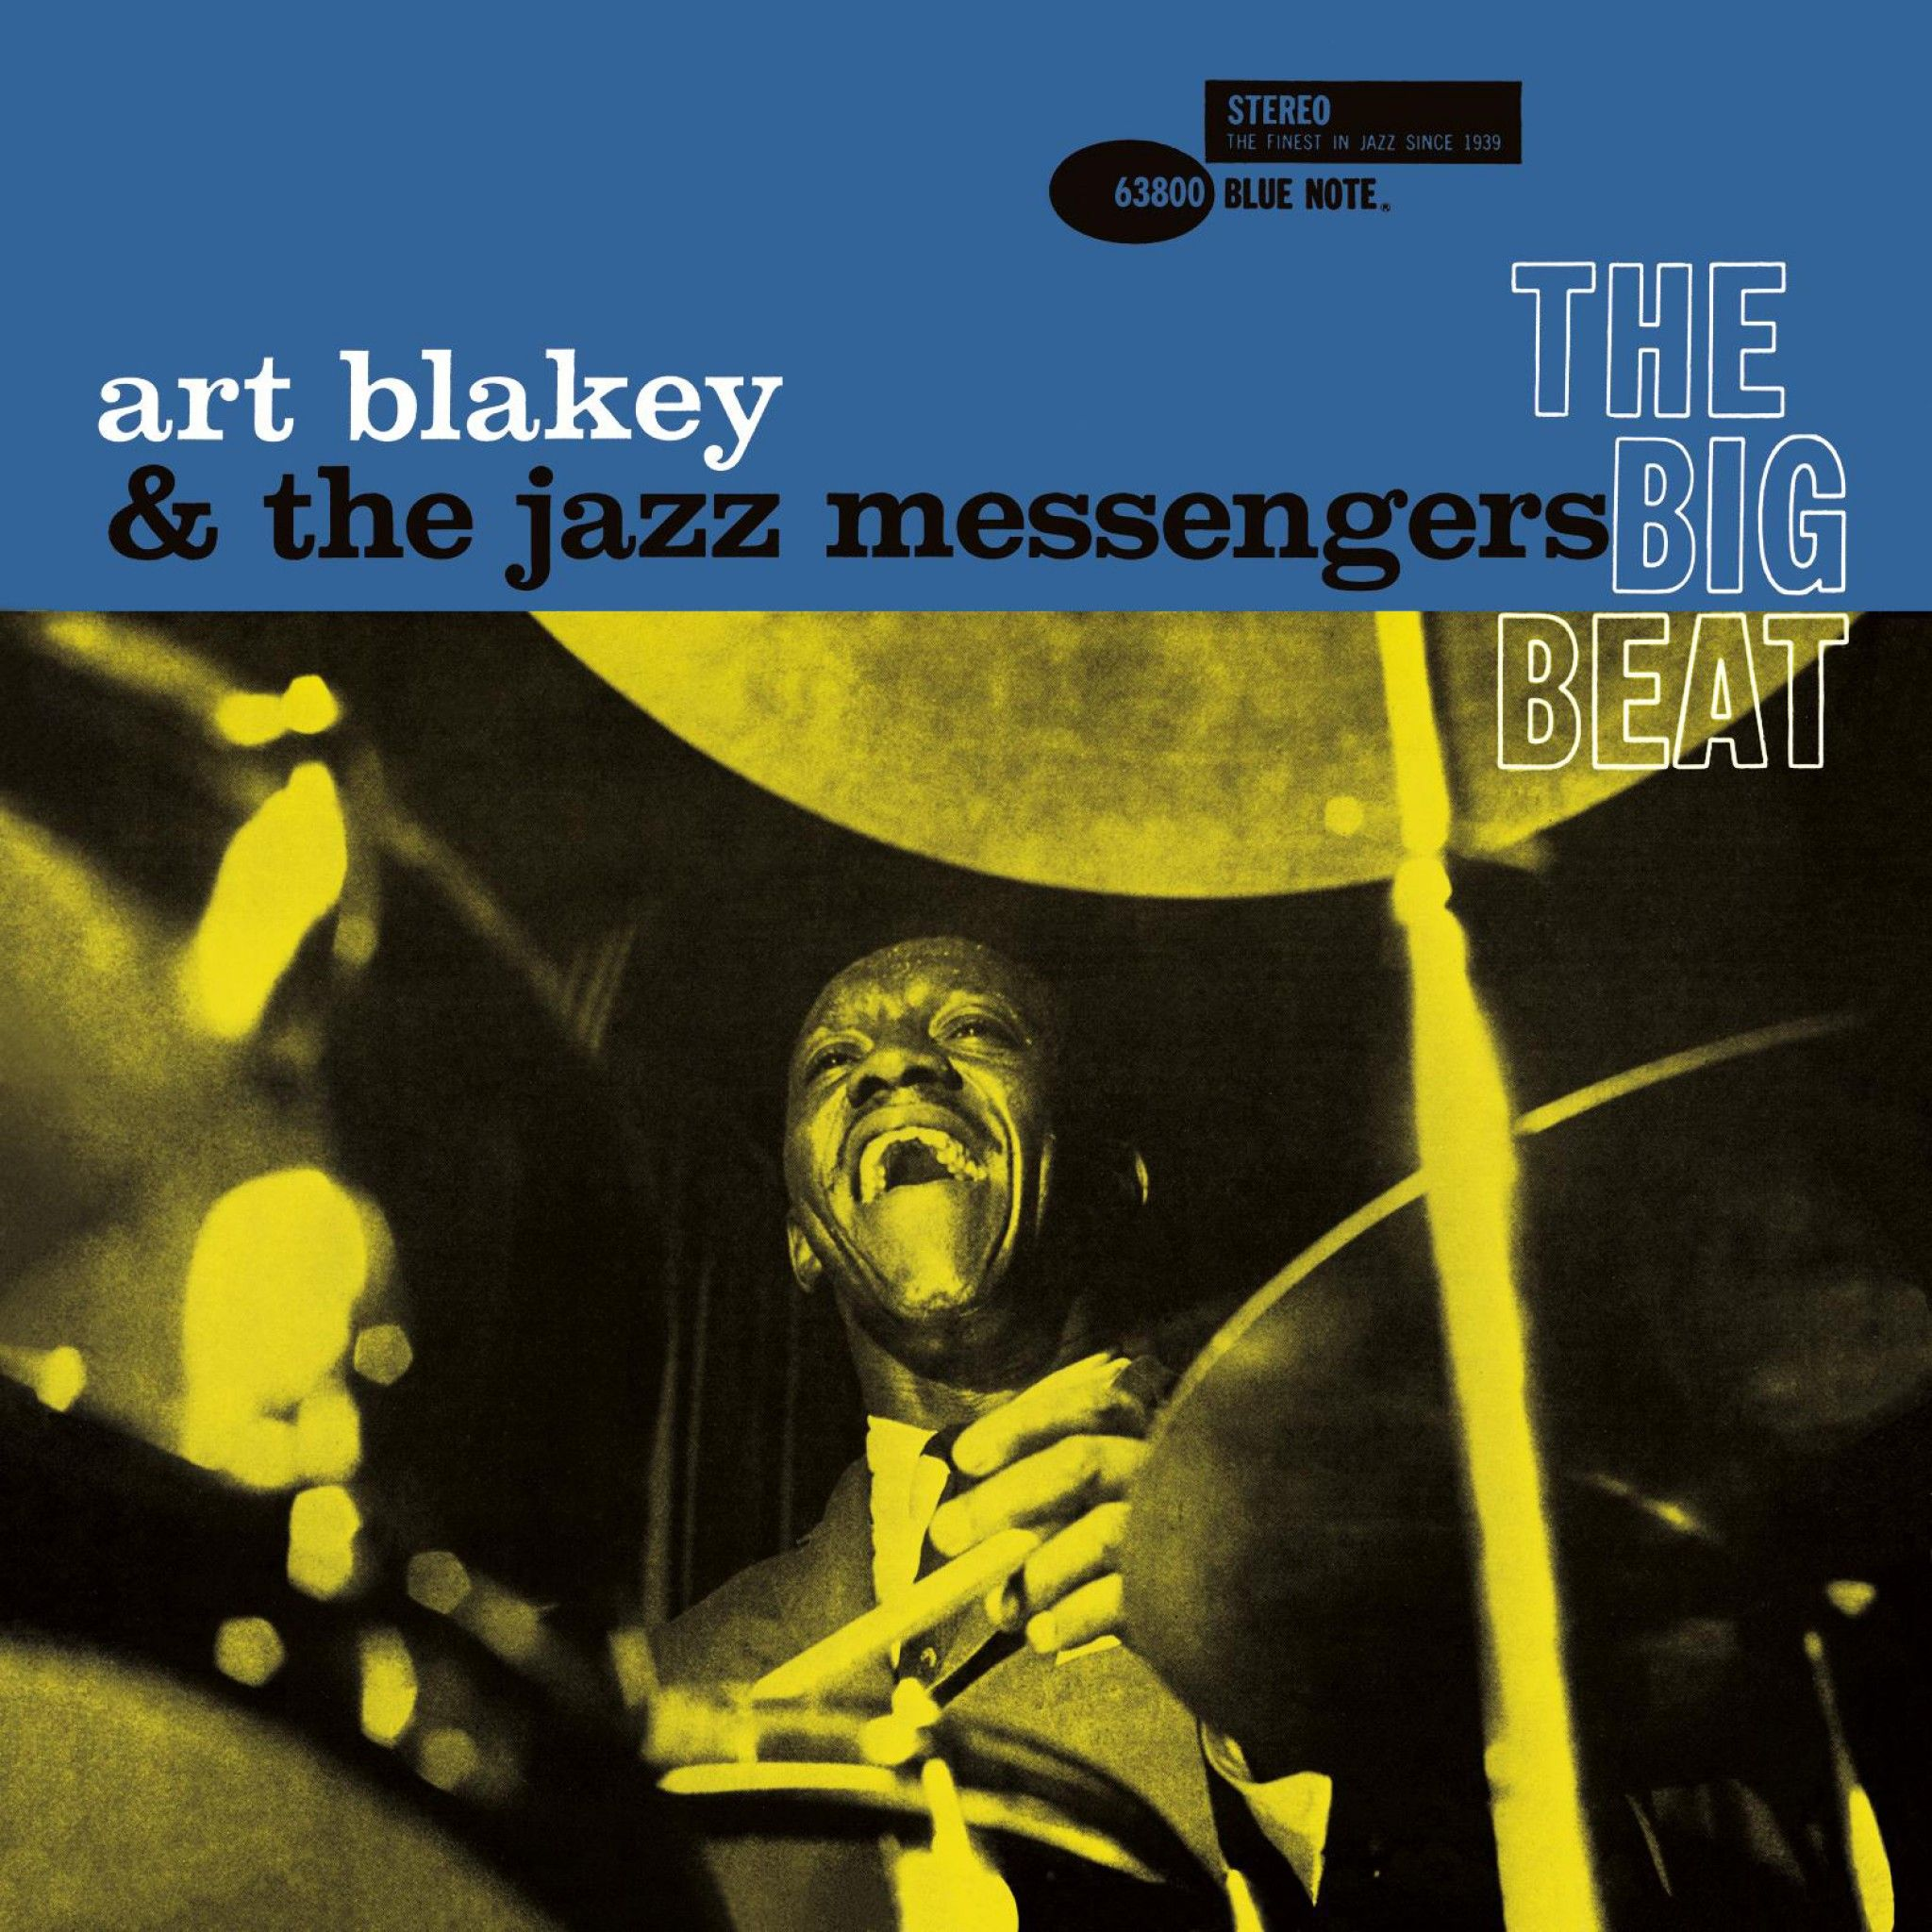 Blue Note: A jazz record label that showed its love for the